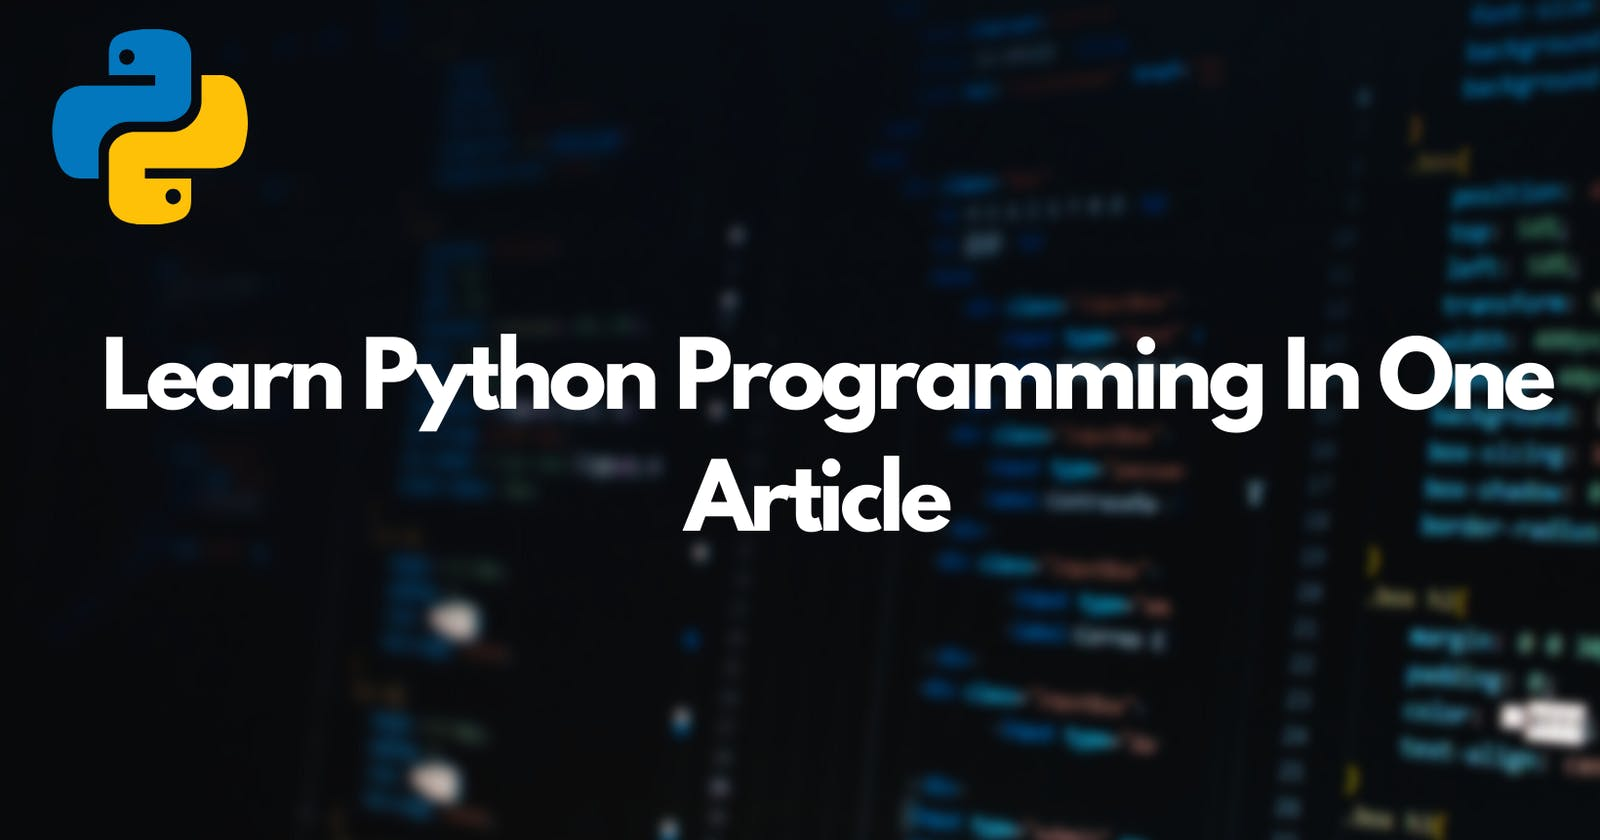 Learn Python Programming In One Article